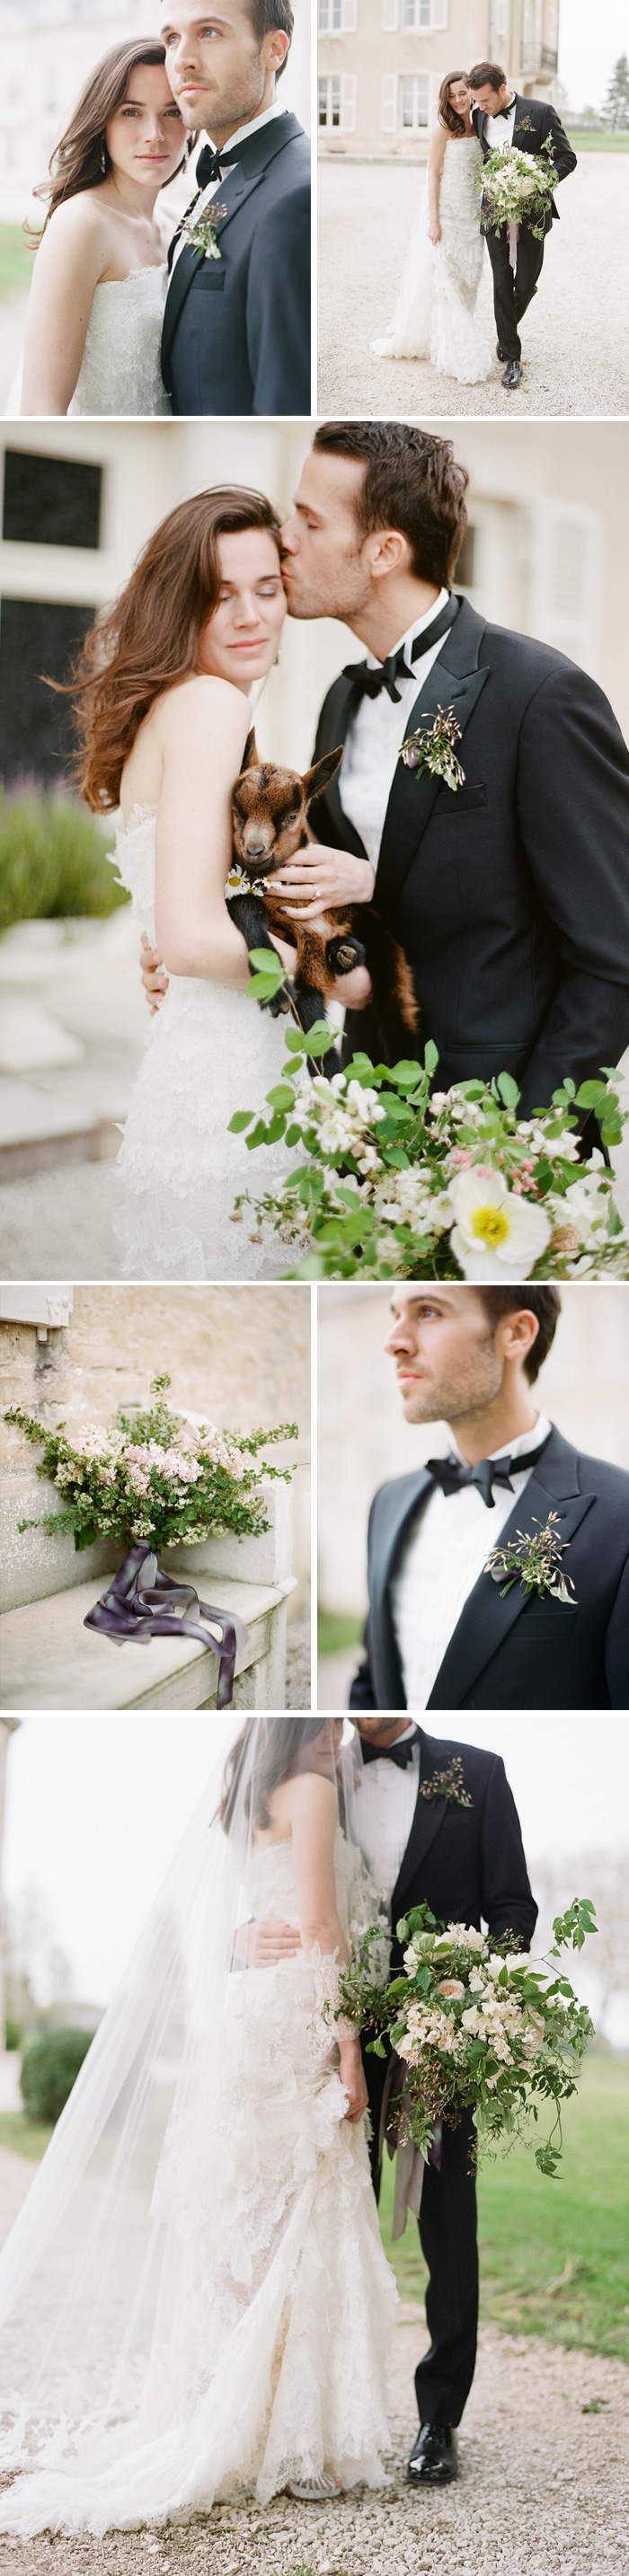 Romantic shots of the bride in a fluttery lace Oscar de la Renta gown and the groom, with a baby goat to add to the rustic atmosphere; photo by Sylvie Gil